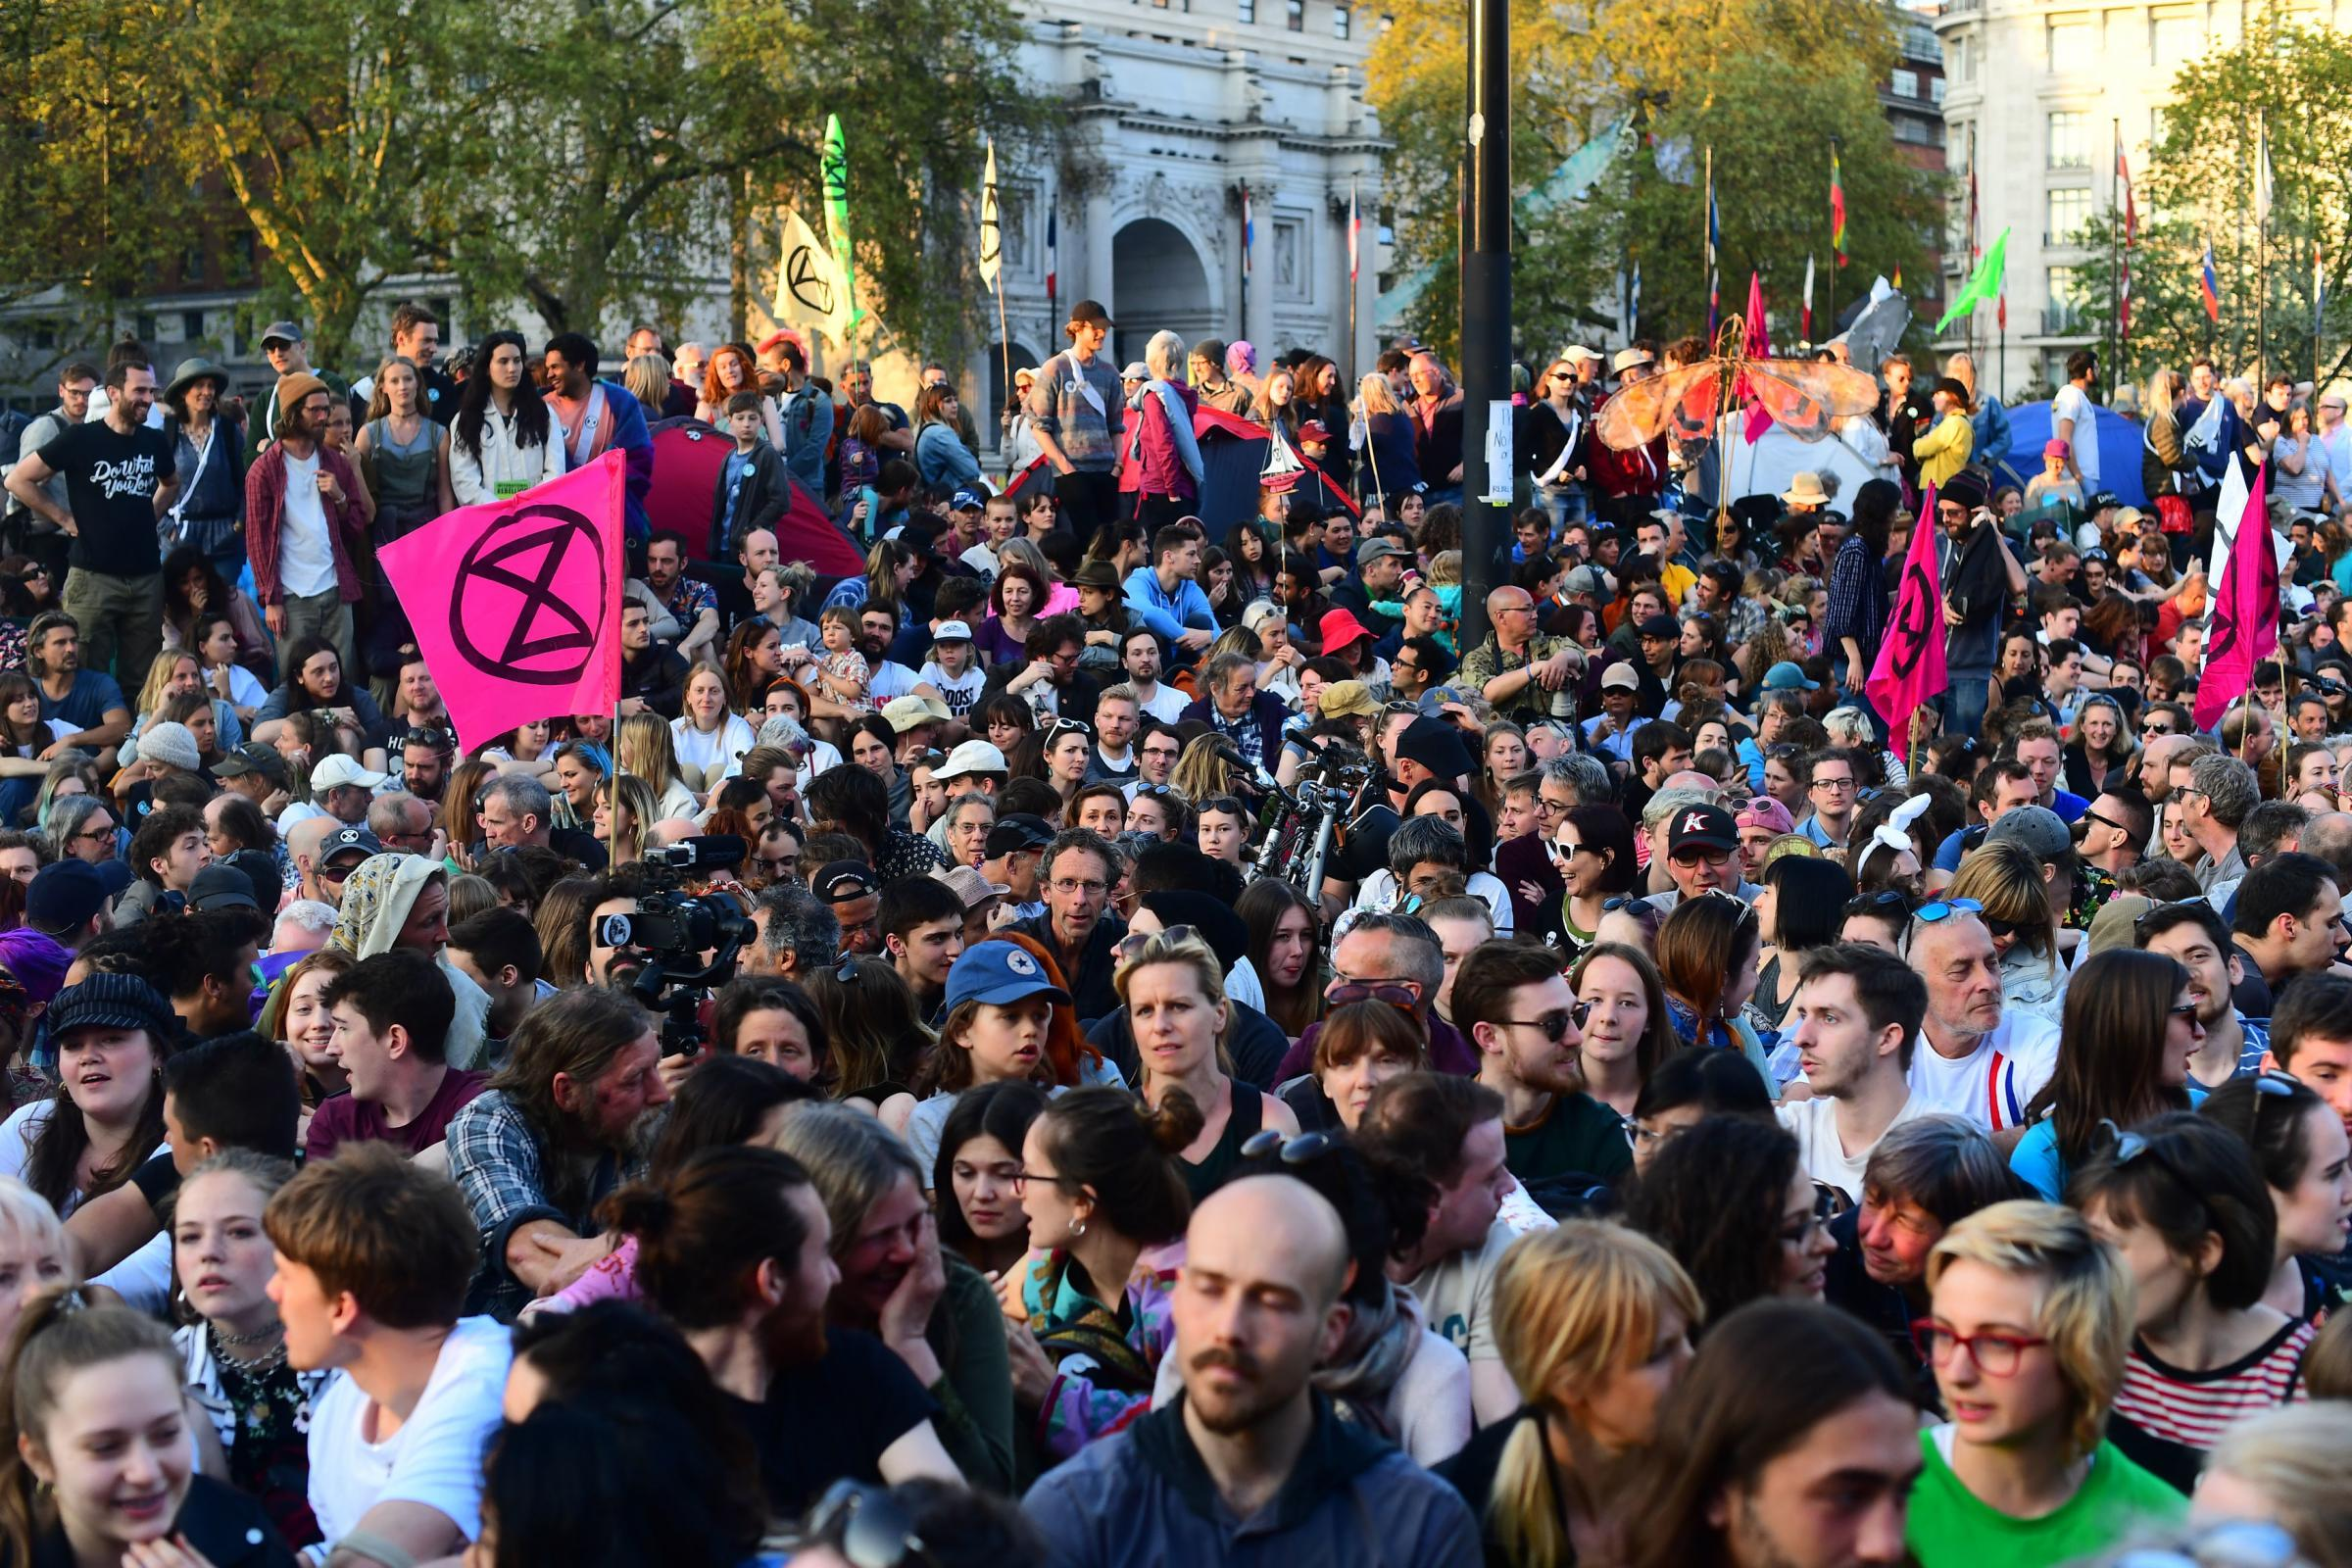 Extinction Rebellion demonstrators gather at Marble Arch in London. Picture: Victoria Jones/PA Wire